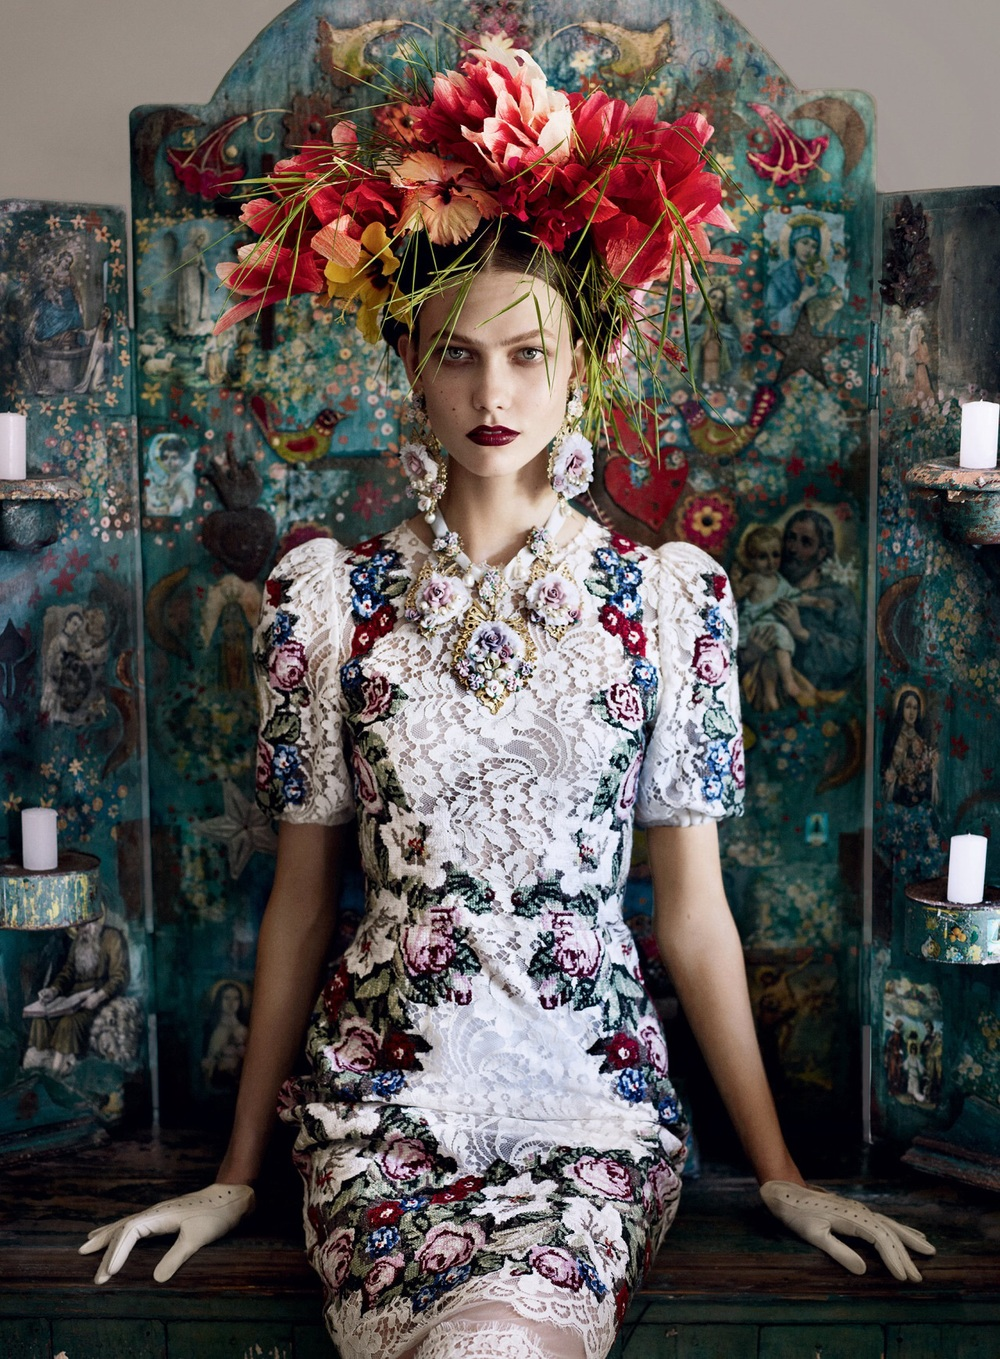 "Vogue's newly released editorial features a a modern figure of striking resemblance to the renowned Mexican painter, Frida Kahlo.  Vogue's ""Frida"" poses in from of an antique style painted wood candelabra screen, poised perfectly in a lace floral dress, donned in an exaggerated version of the artist's signature floral headdress, accessorised by oversized drop earrings and a necklace, each a bouquet of roses backed with lace and garnished with pearls.//""Frida"" de Vogue pose à partir d'un écran de candélabres bois peint de style antique, prêt parfaitement à une robe en dentelle florale, enfilée dans une version exagérée de coiffeflorale de signature de l'artiste, accessoirisée de grandes boucles d'oreilles et un collier, chacun un bouquet de roses soutenu avec dentelle et garni de perles."